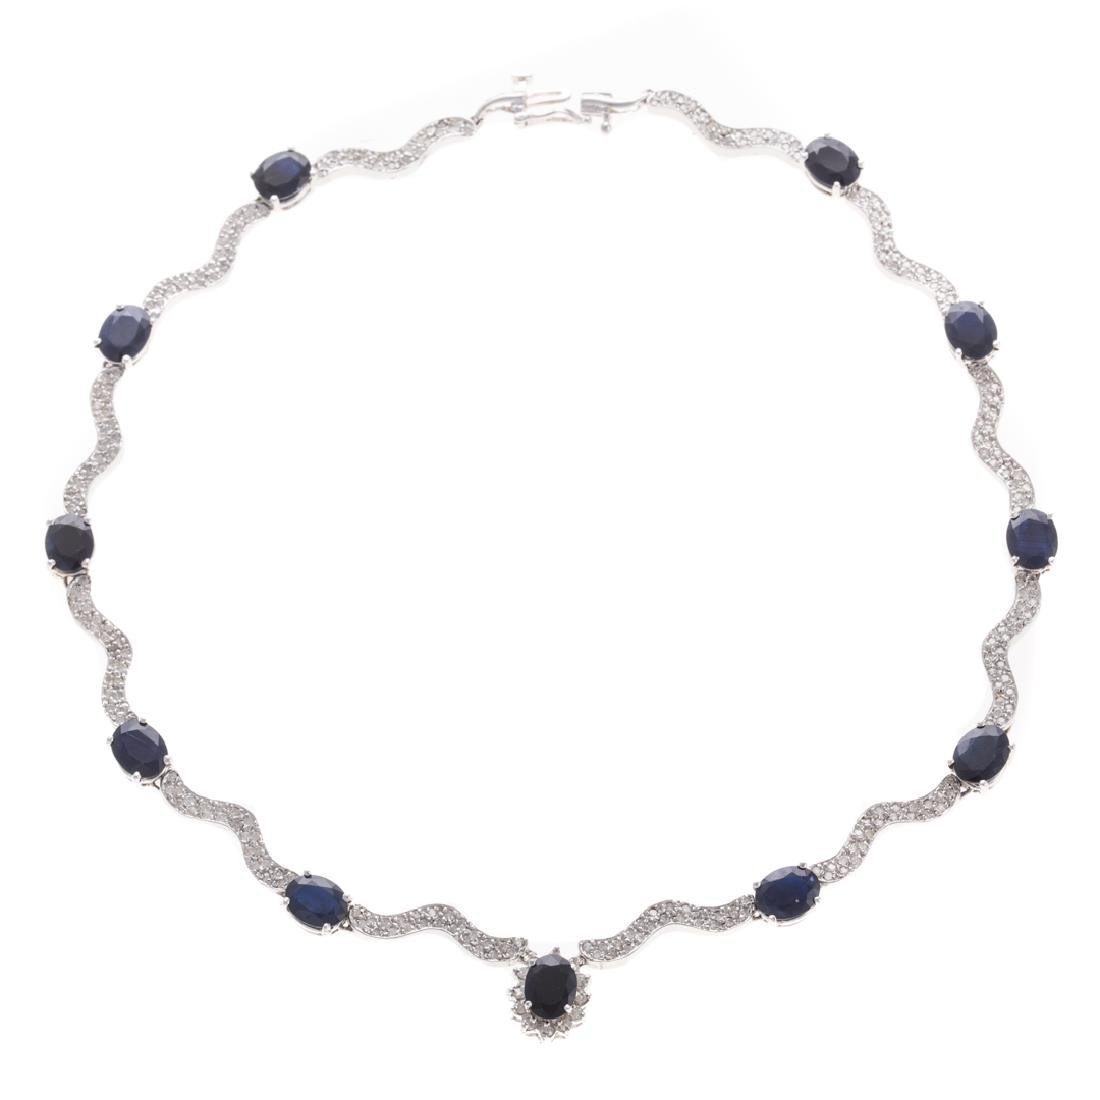 A Lady's Sapphire and Diamond Necklace in 14K